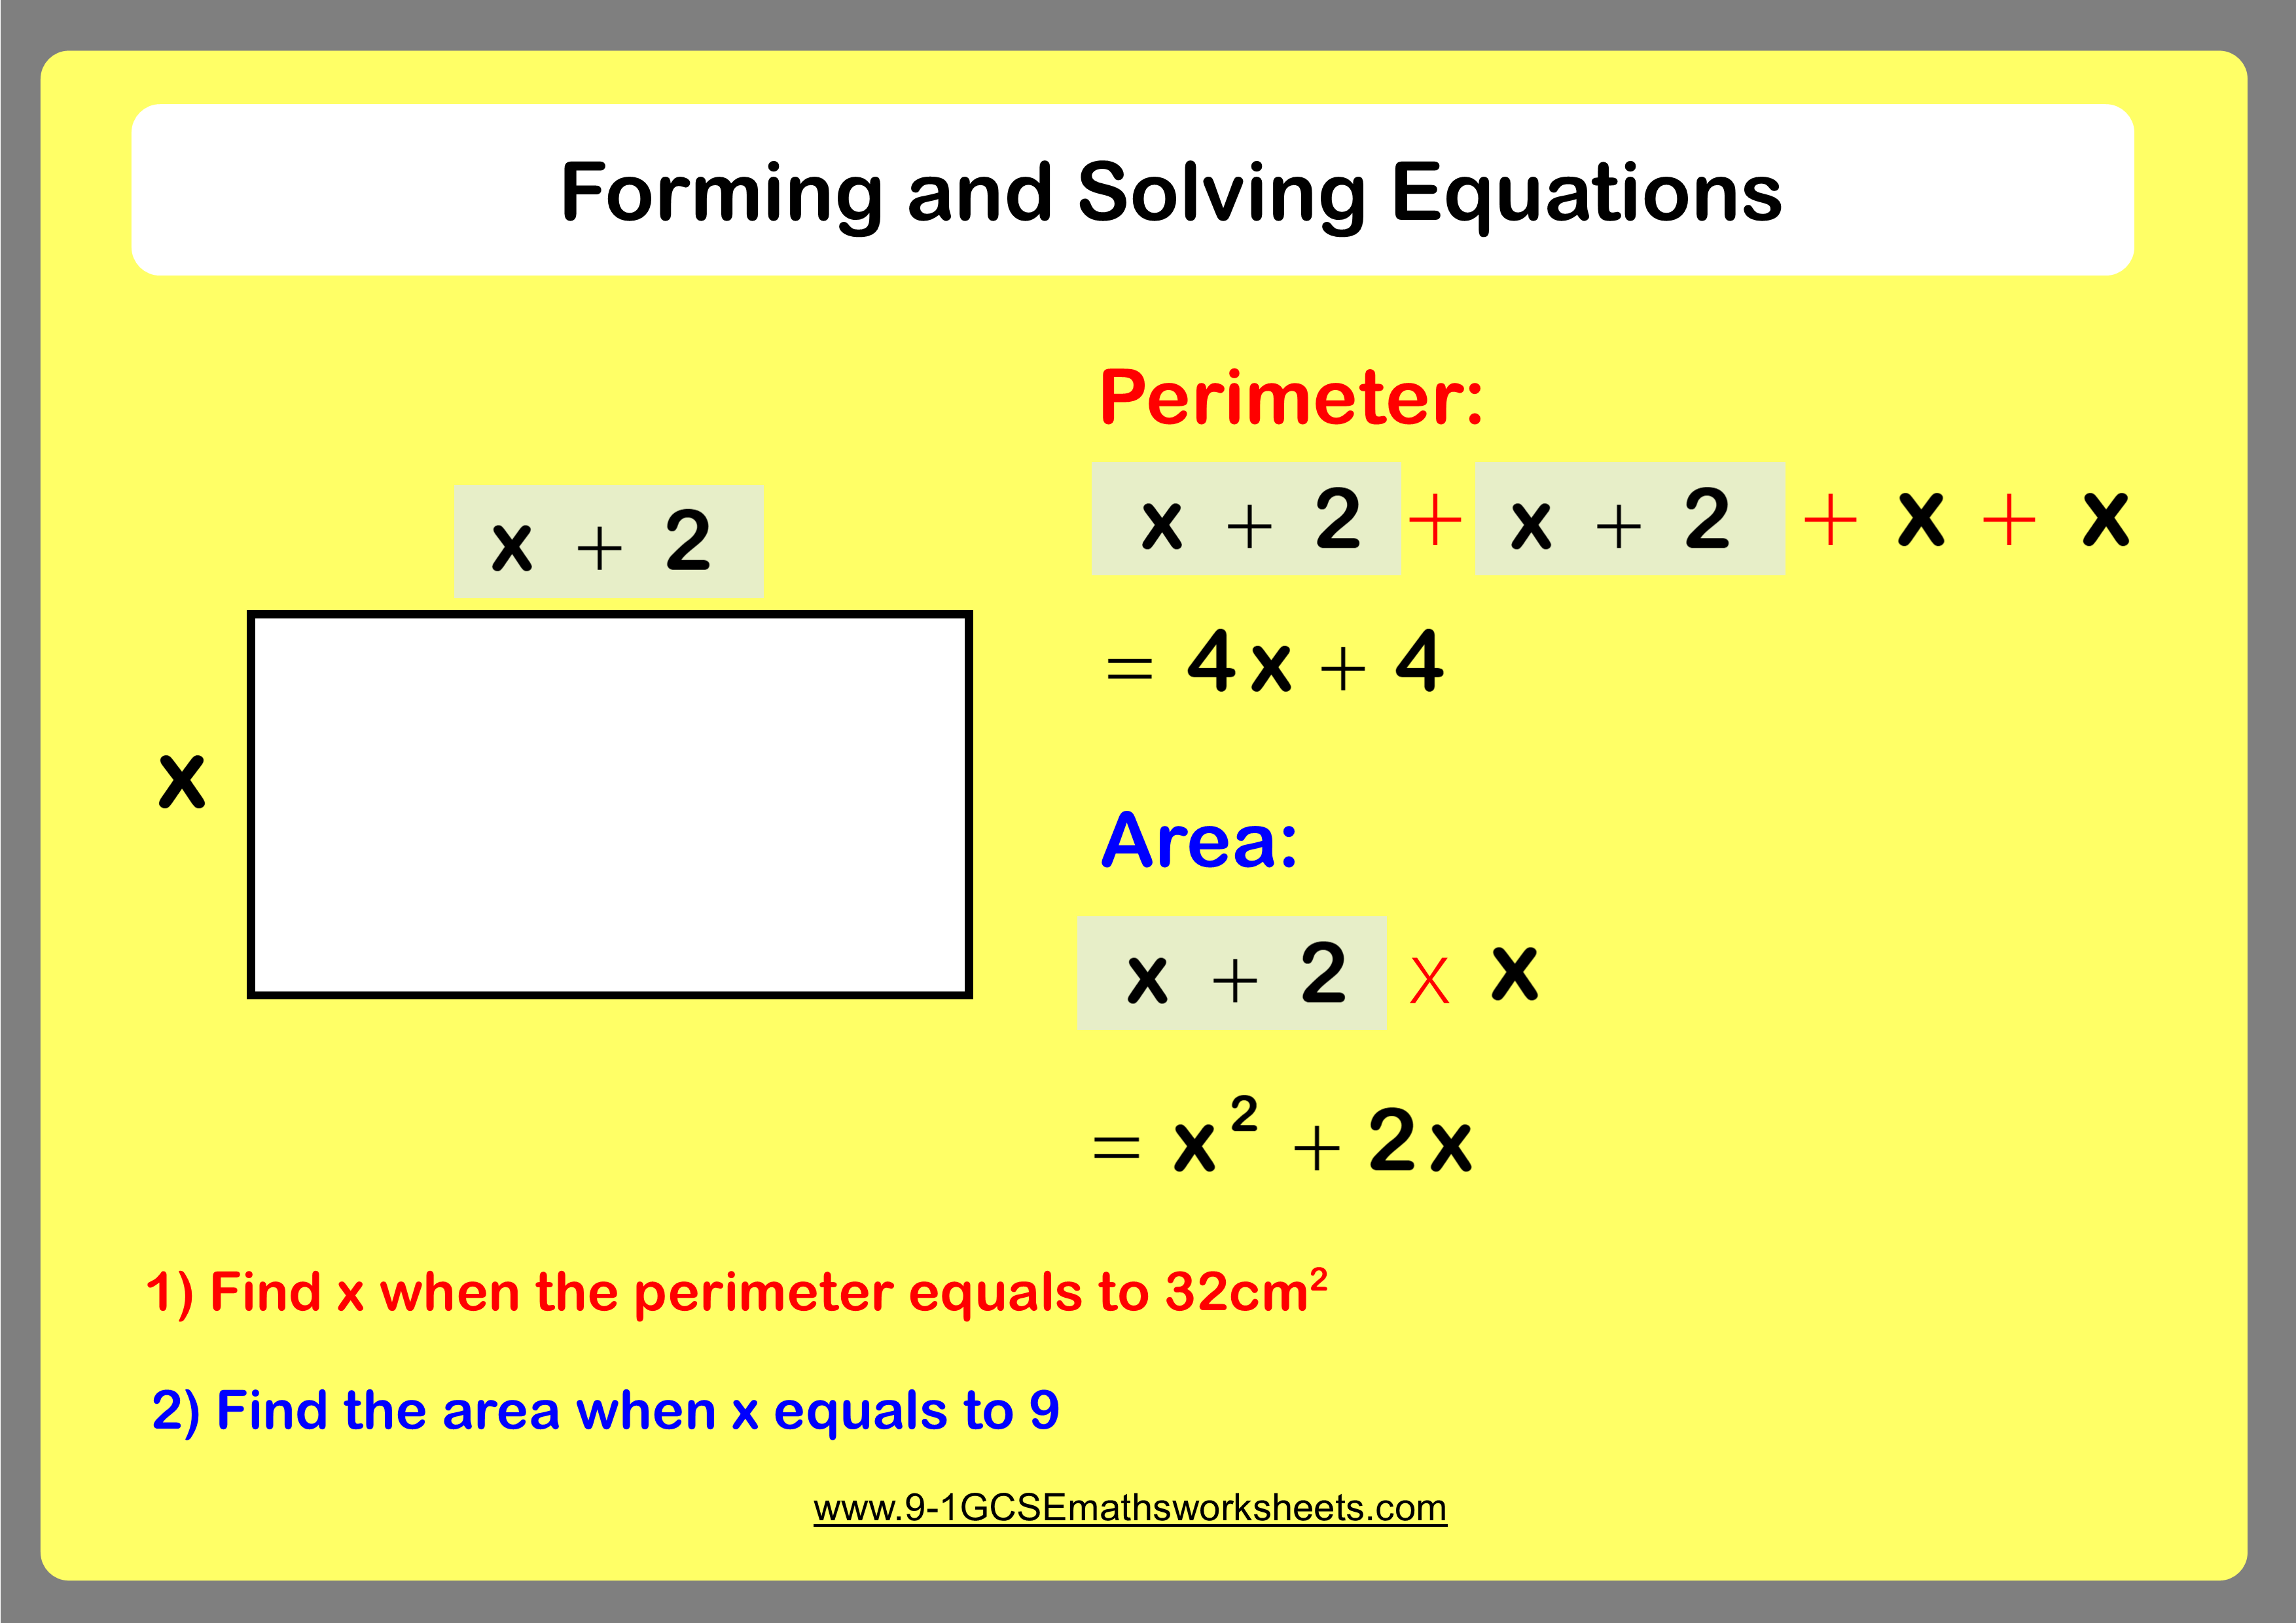 Forming And Solving Equations Example